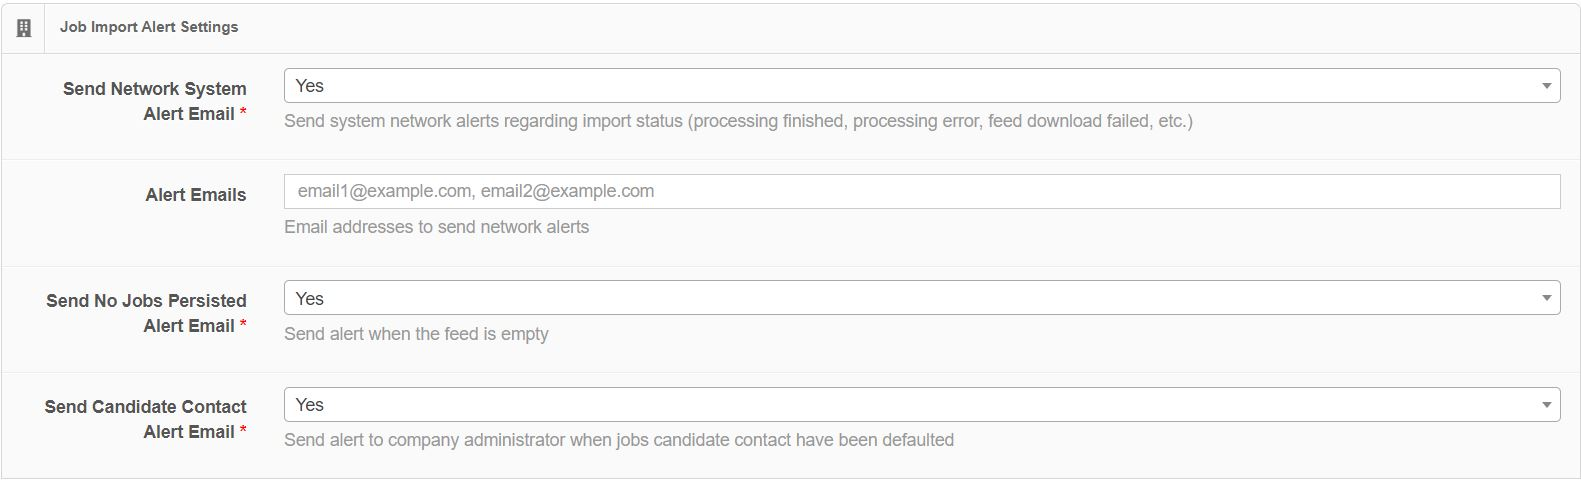 Job Import Alert Settings